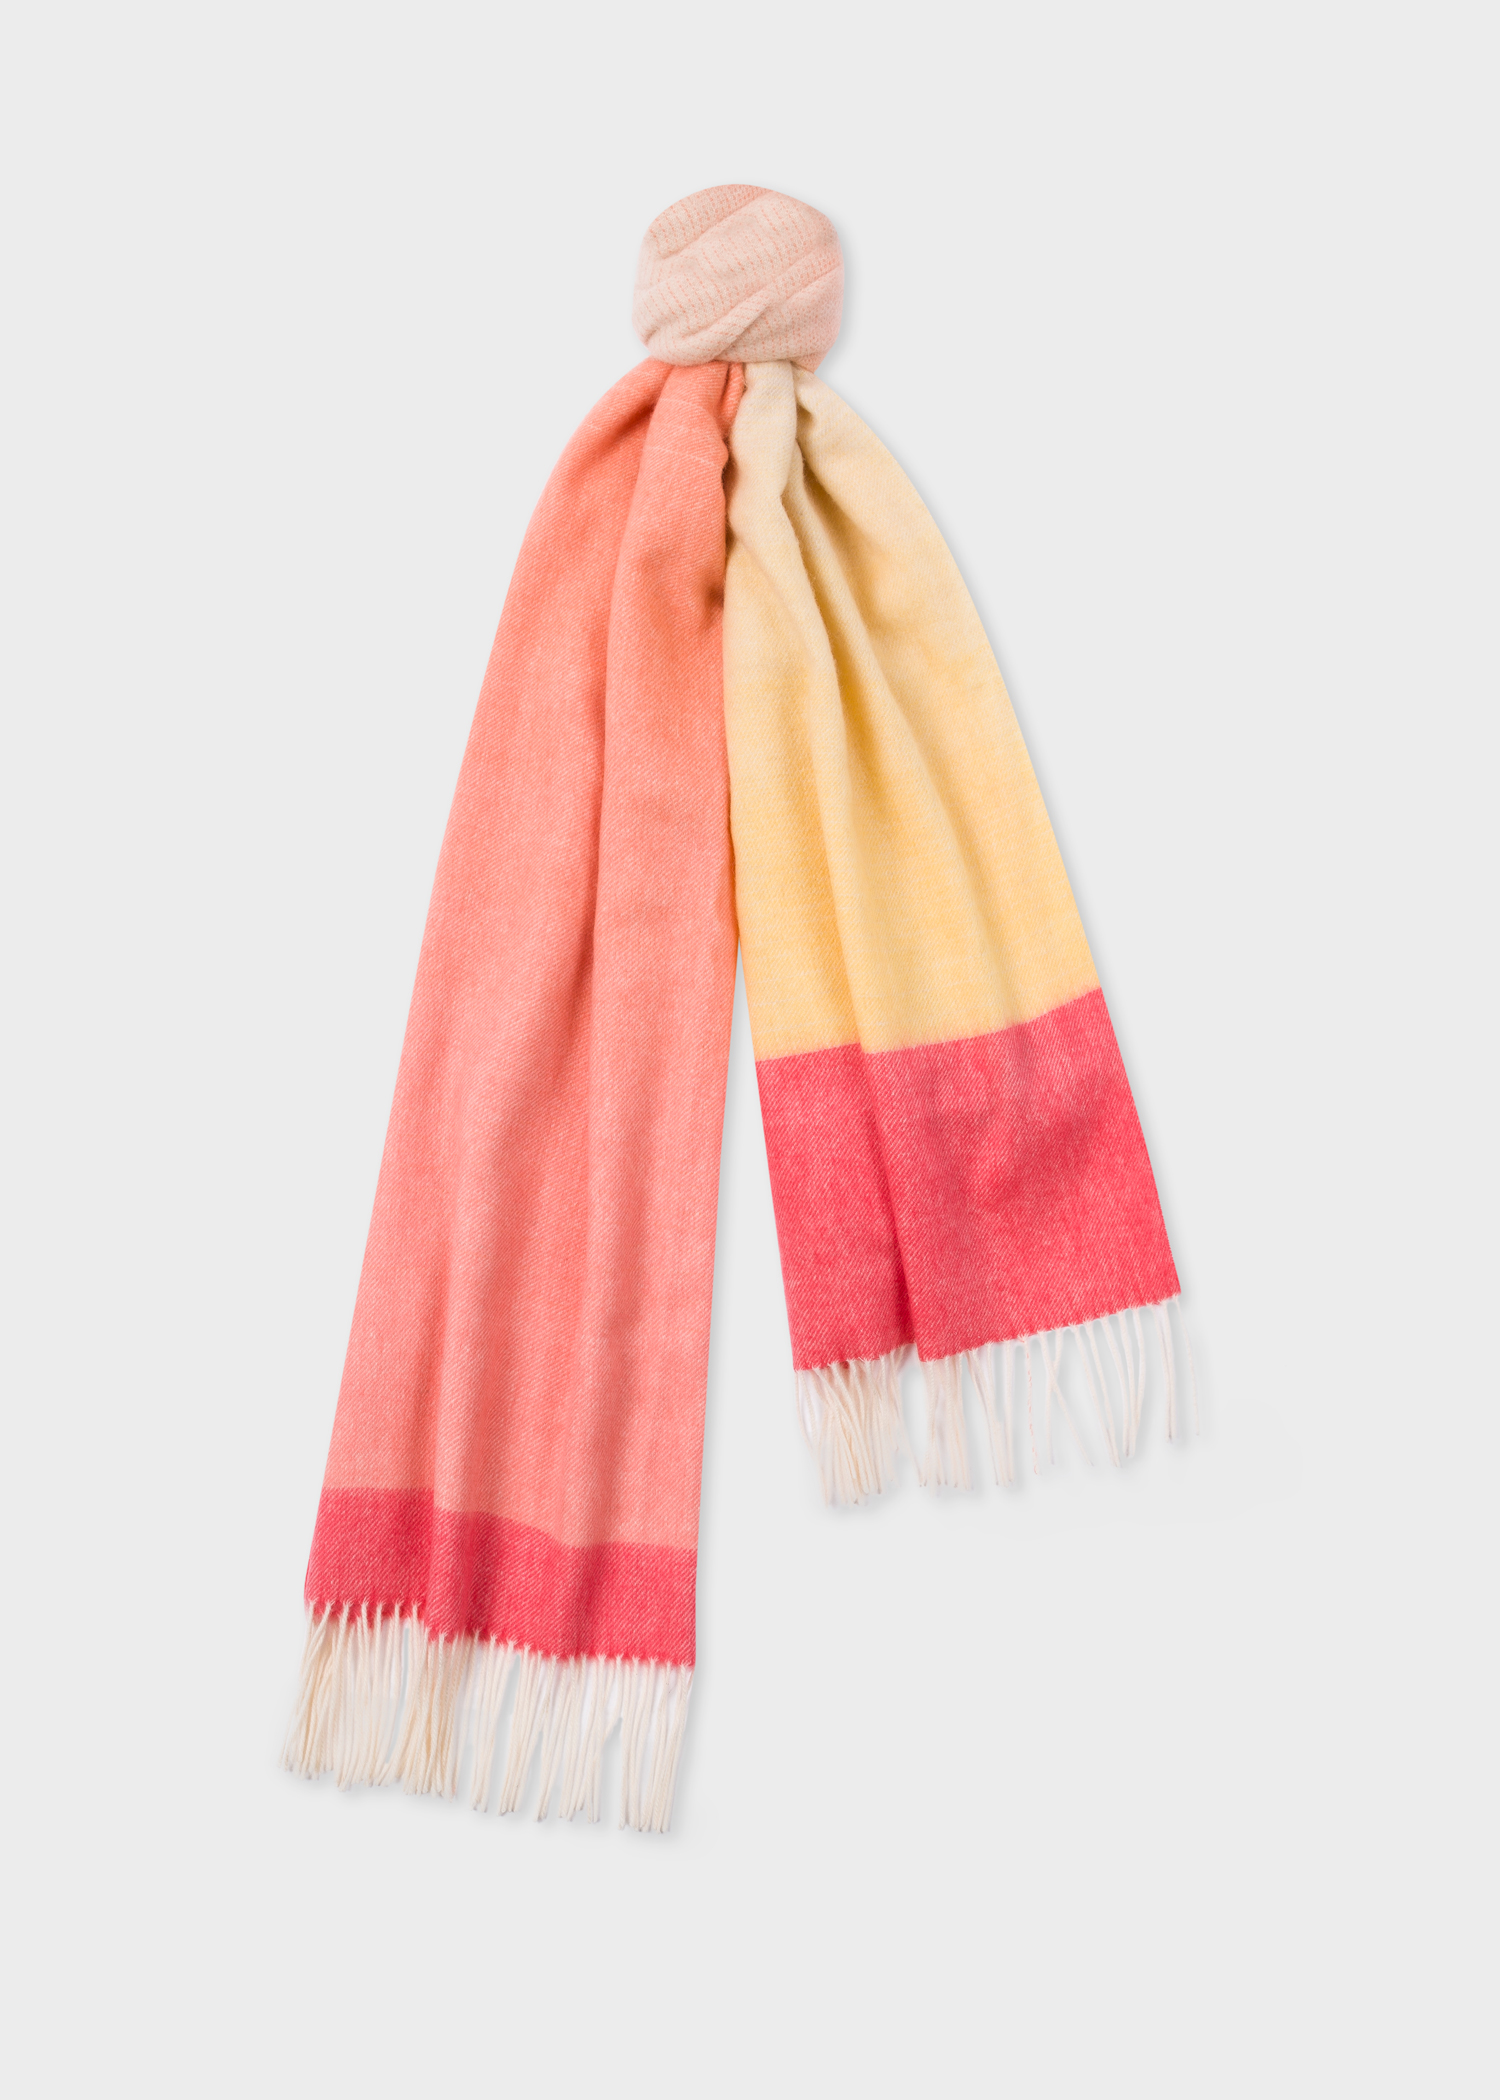 a4d41fef7 Folded View - Women's Pink And Yellow Ombré Lambswool And Cashmere Scarf  Paul Smith